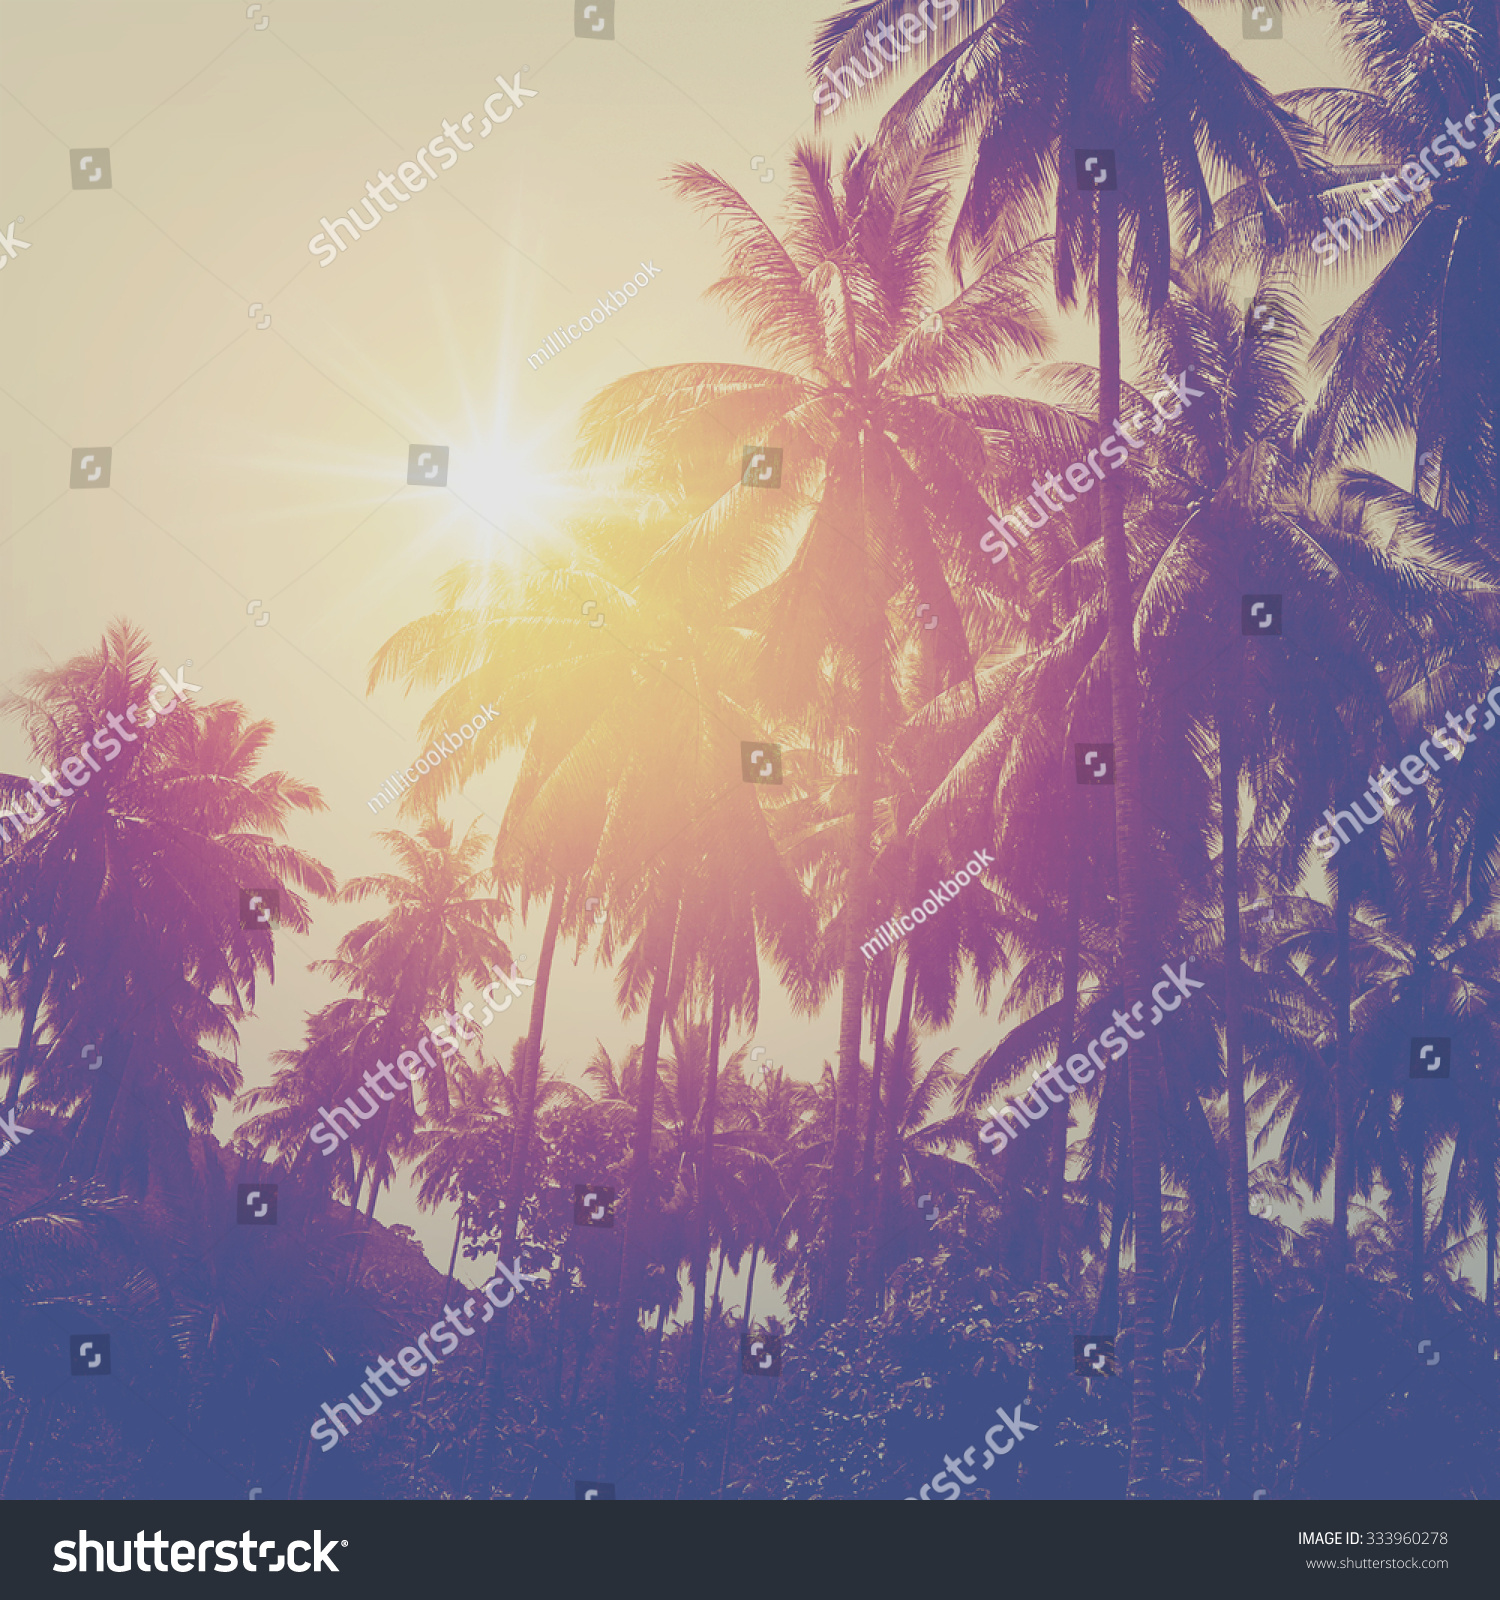 Tropical Beach Landscape With Coconut Palm Trees At Sunset